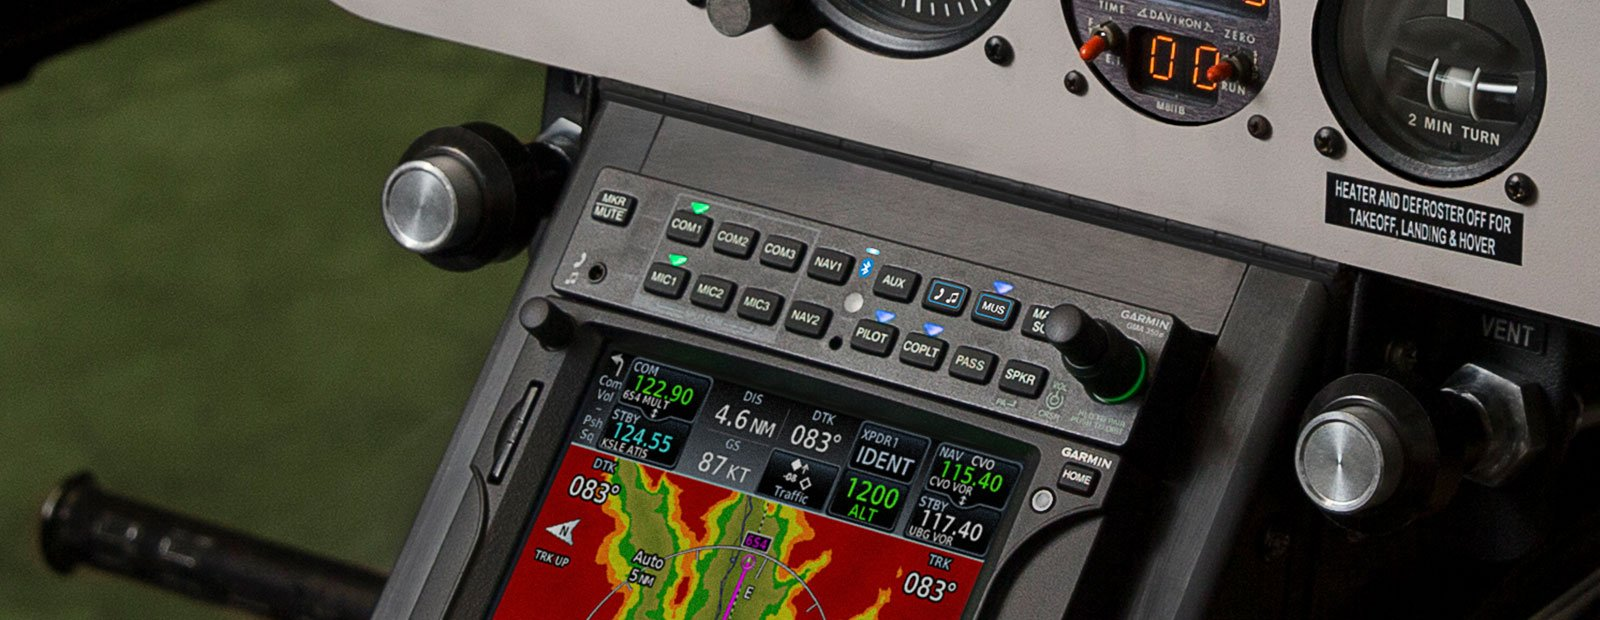 Helicopters – Audio Panels